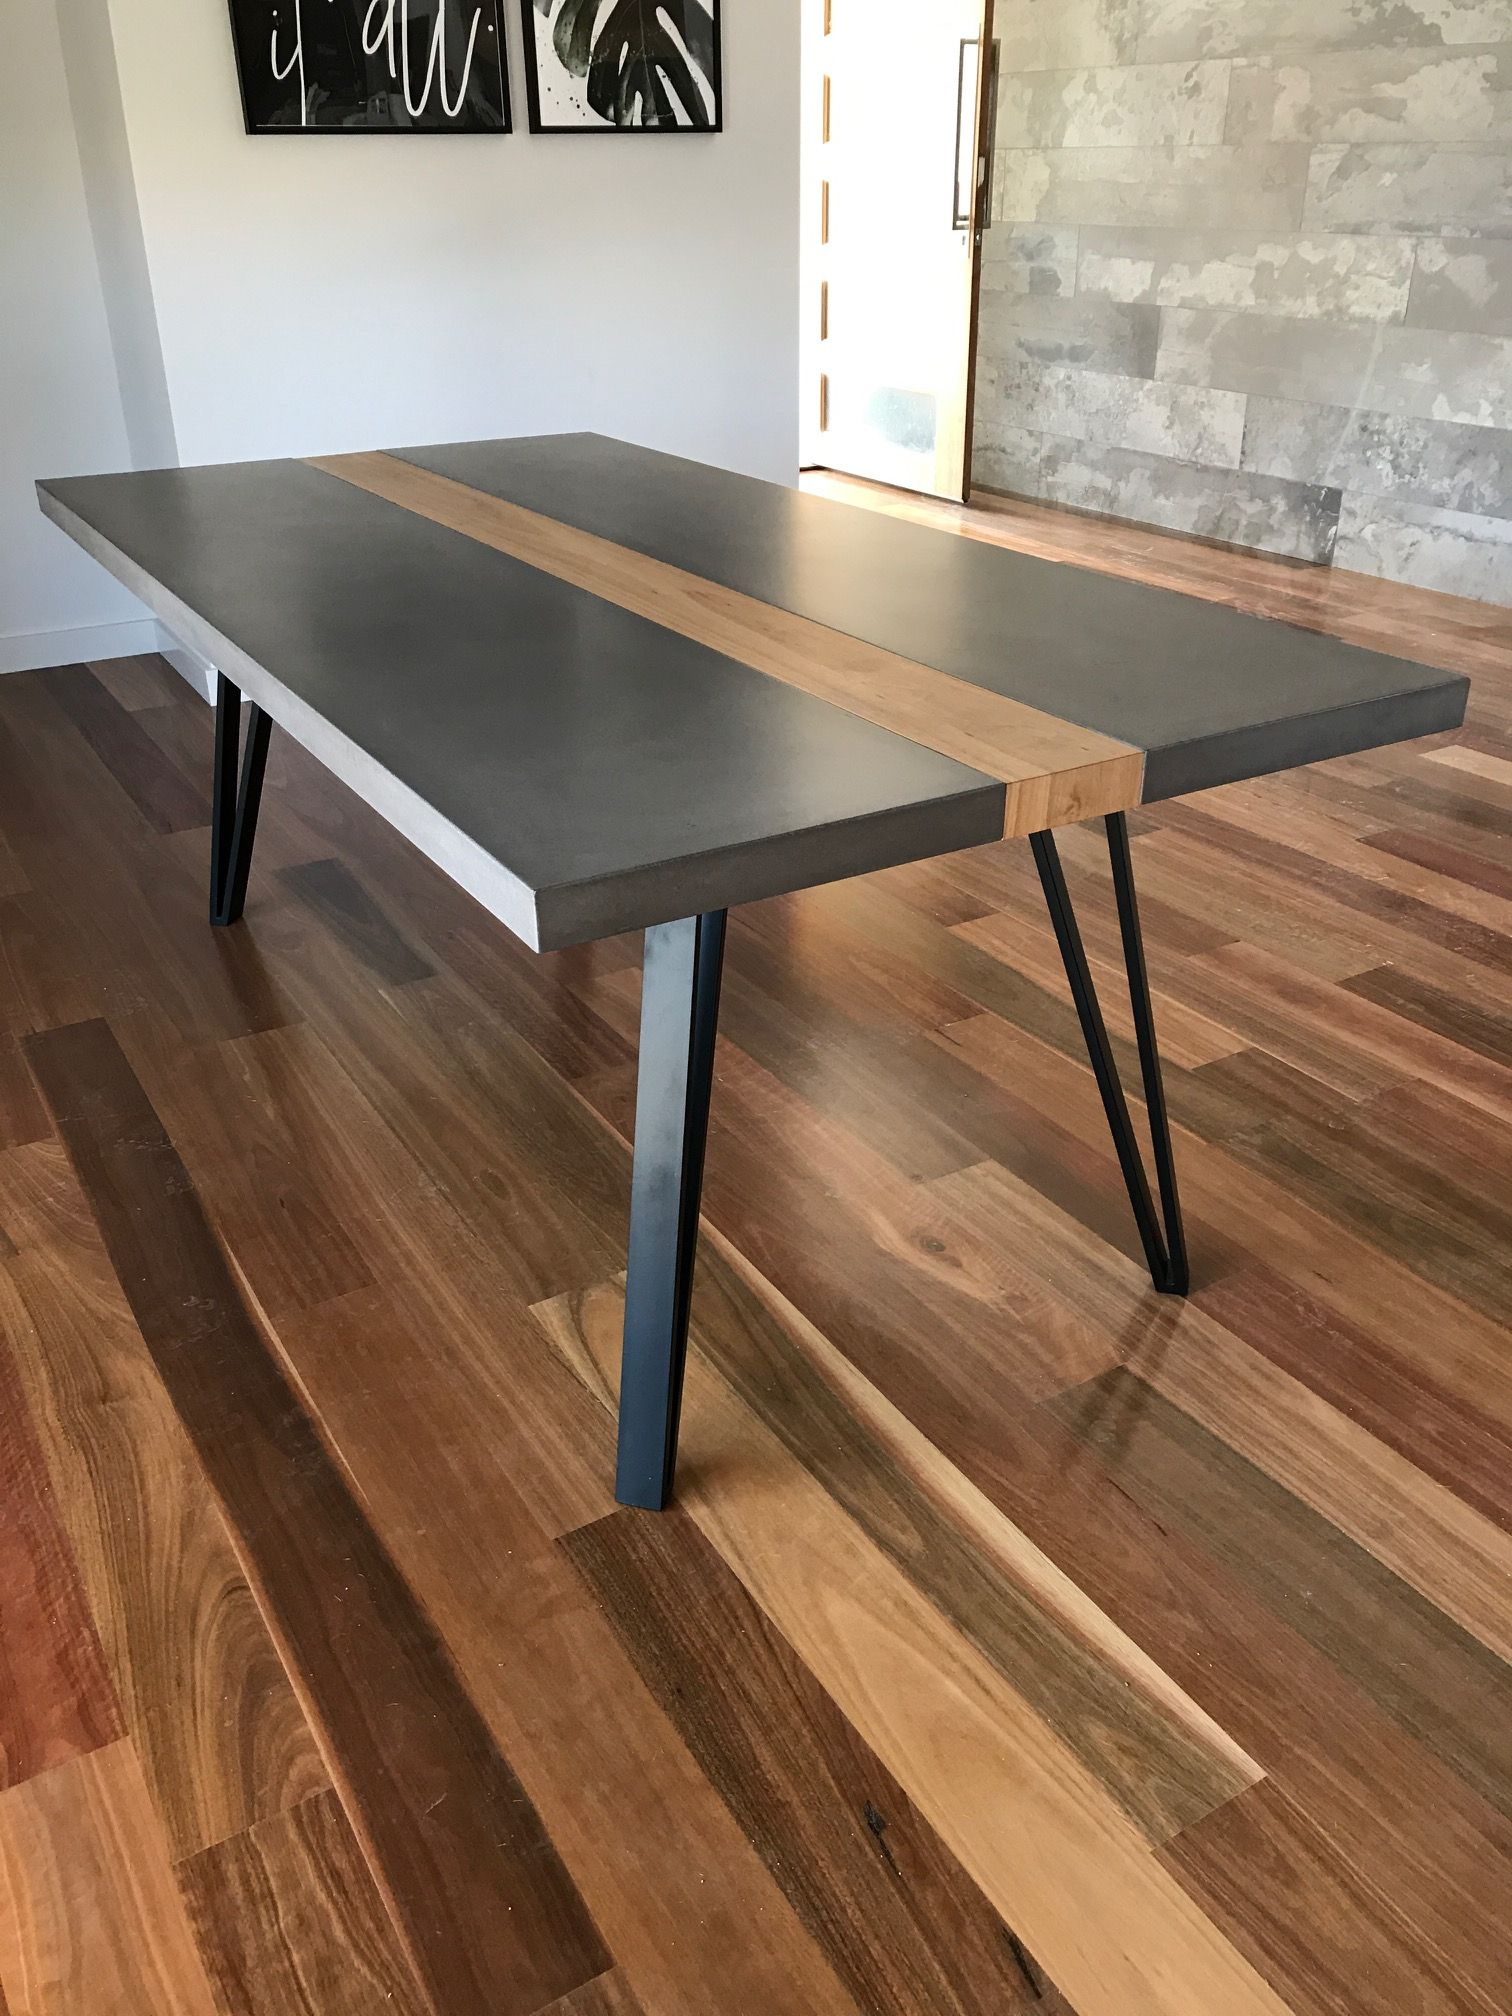 Timber Dining Tables Adelaide Concrete Top With A Timber Strip And Powder Coated Steel Legs By